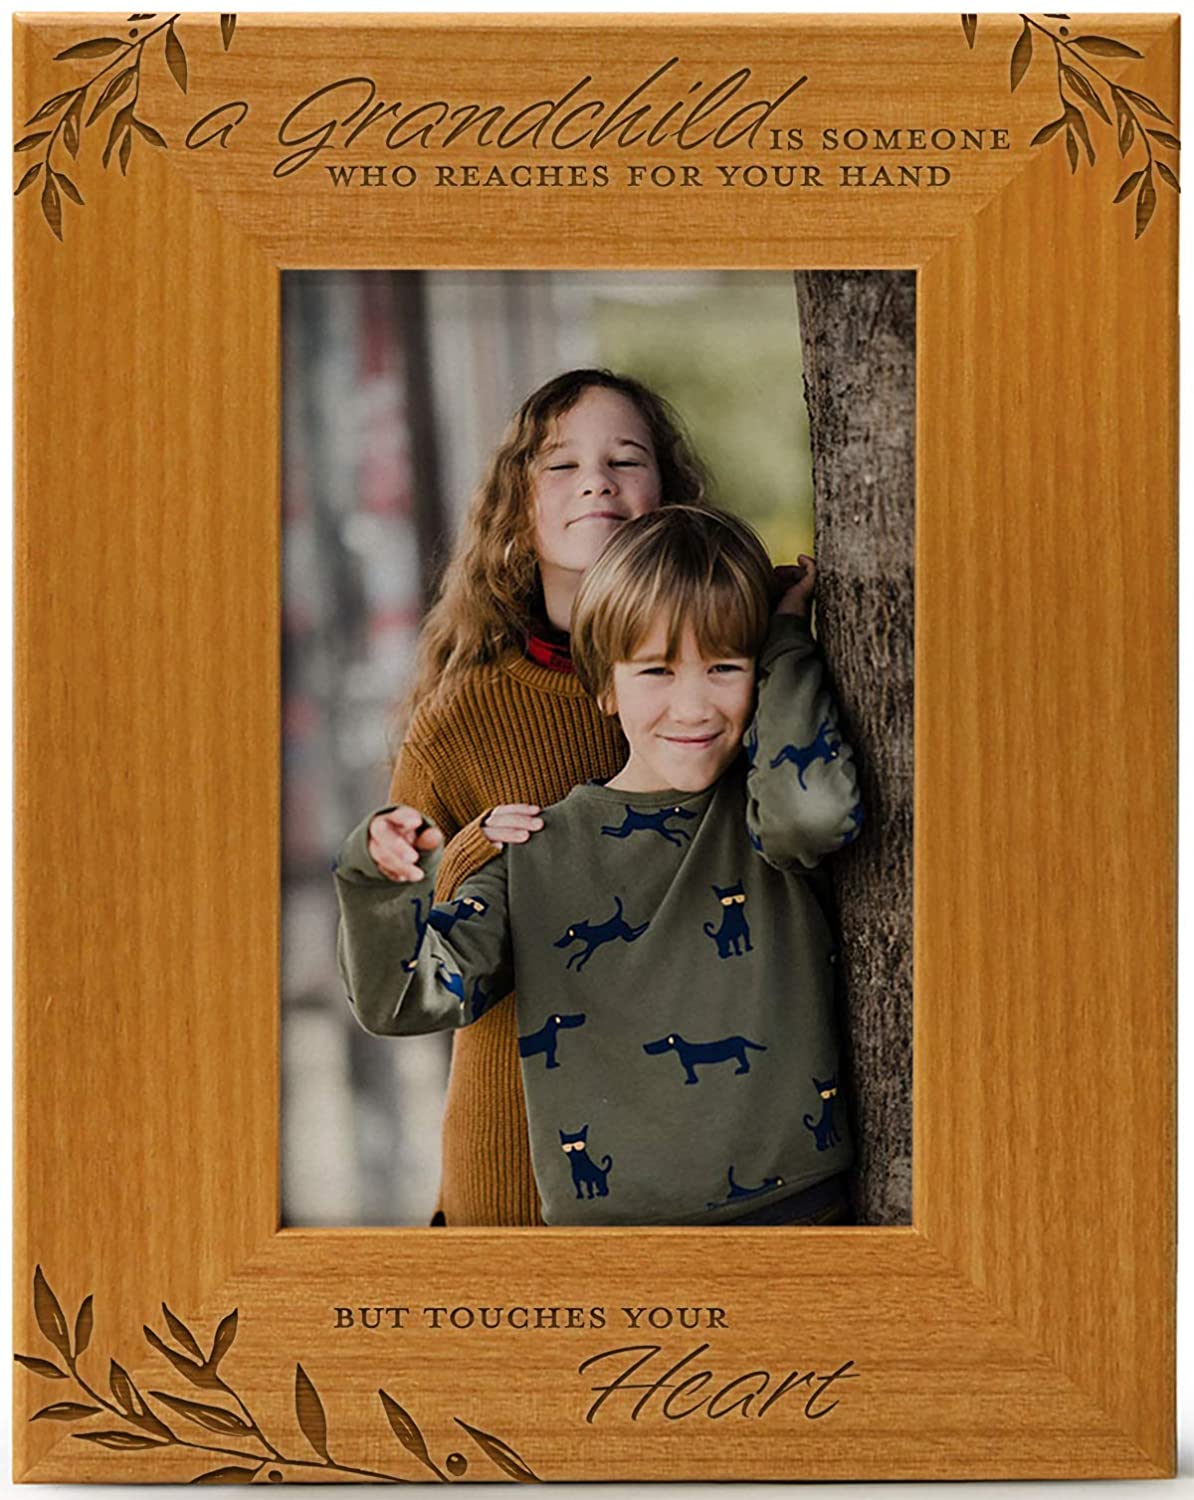 A Grandchild is Someone Who Reaches For Your Hand But Touches Your Heart, Engraved Natural Wood Photo Frame Fits 4x6 Vertical Portrait for Grandparents, Grandparent's Day, Grandma Gift, Grandpa Gift